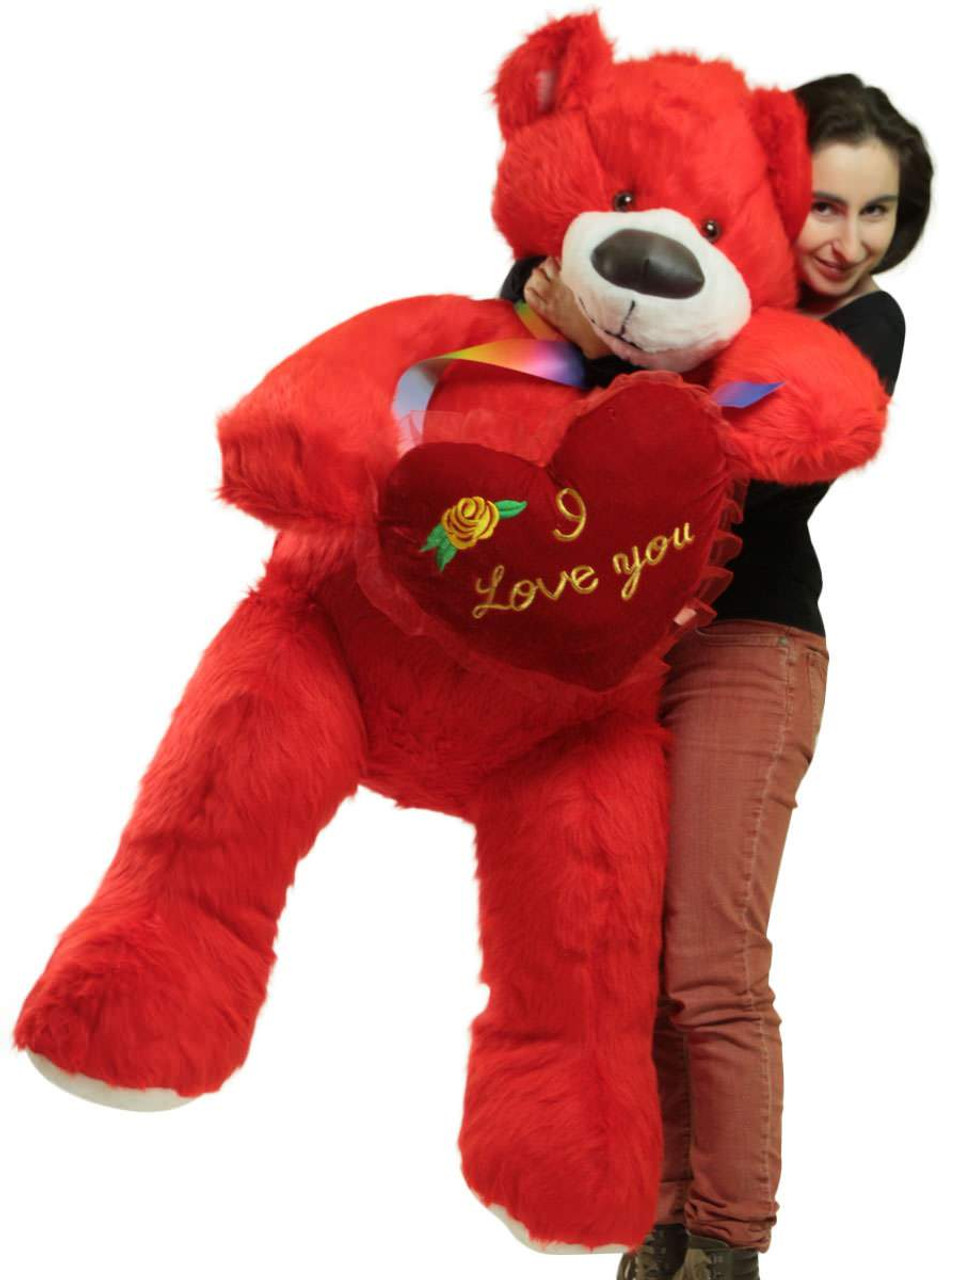 Red Teddy Bear 5 Feet, Life Size 5 Foot Red Teddy Bear With I Love You Heart Pillow Big Plush Soft Stuffed Animal Made In Usa Big Plush Personalized Giant Teddy Bears Custom Stuffed Animals